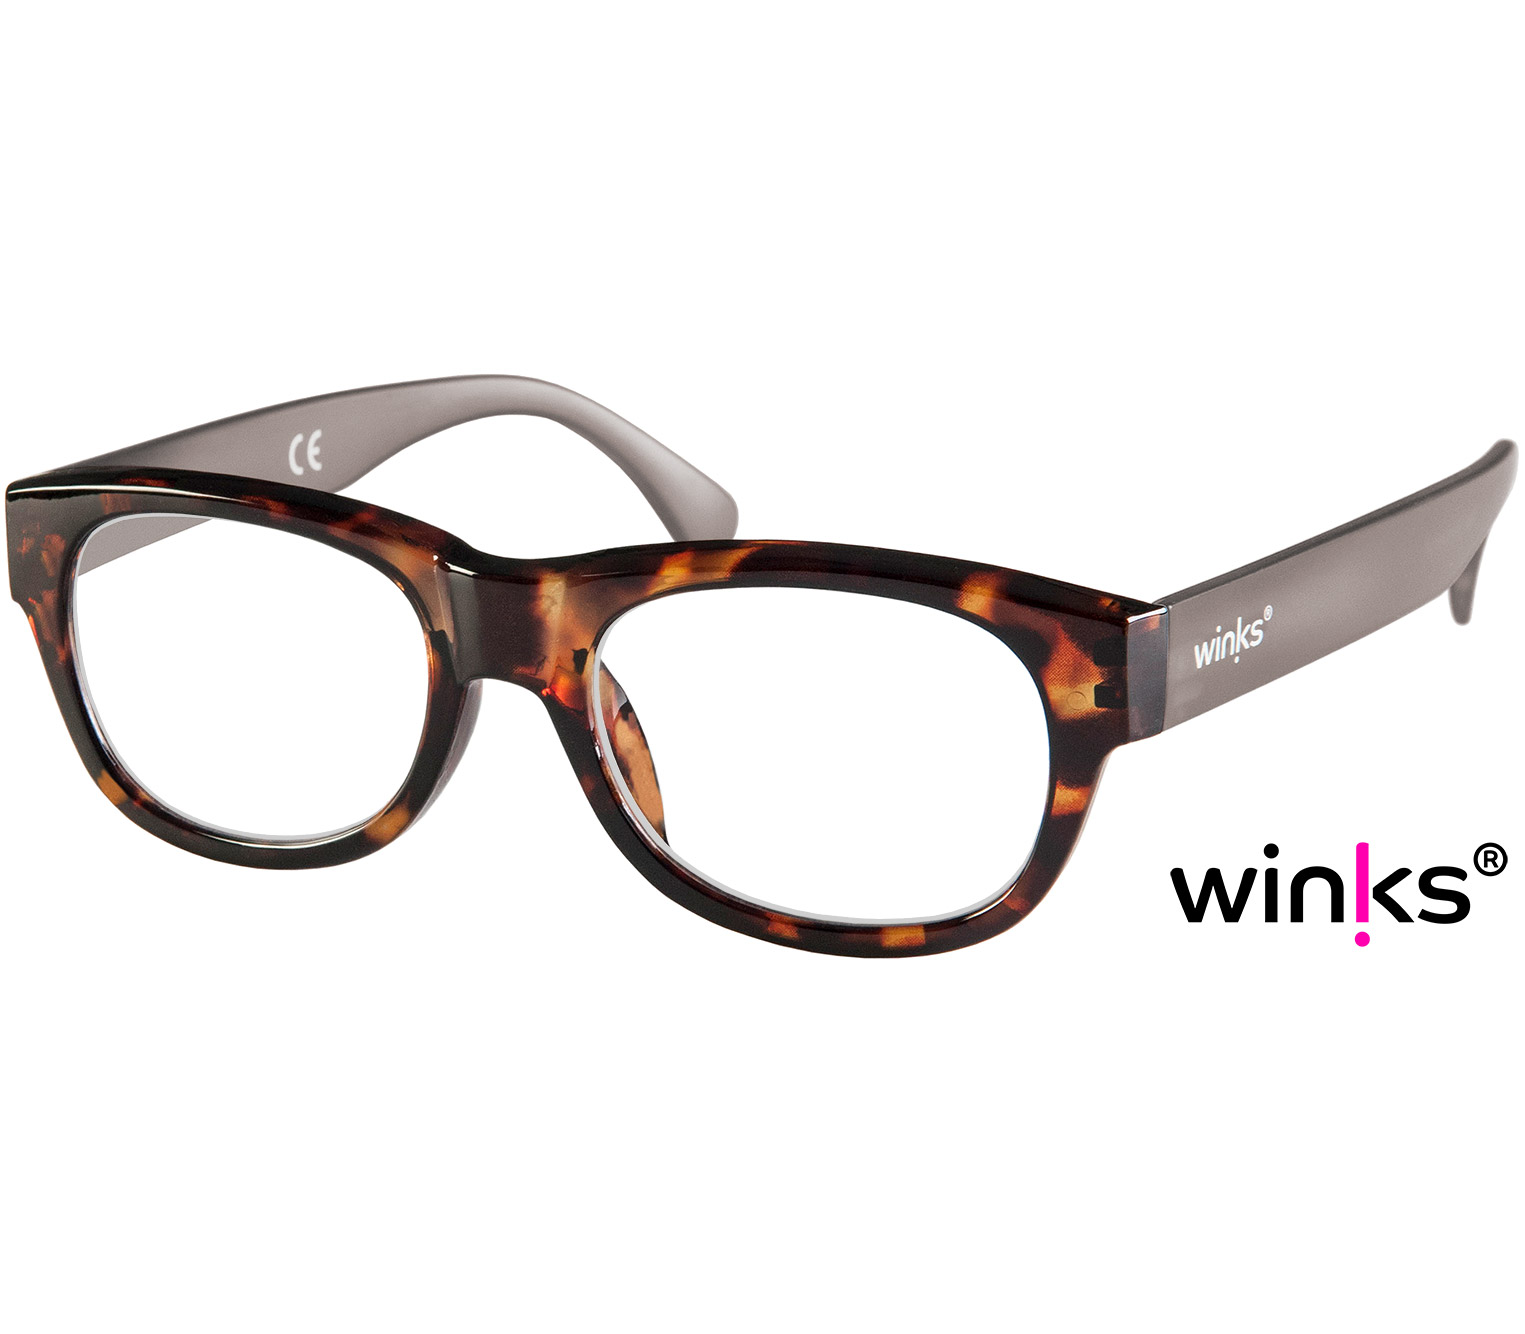 Main Image (Angle) - Max (Tortoiseshell) Retro Reading Glasses